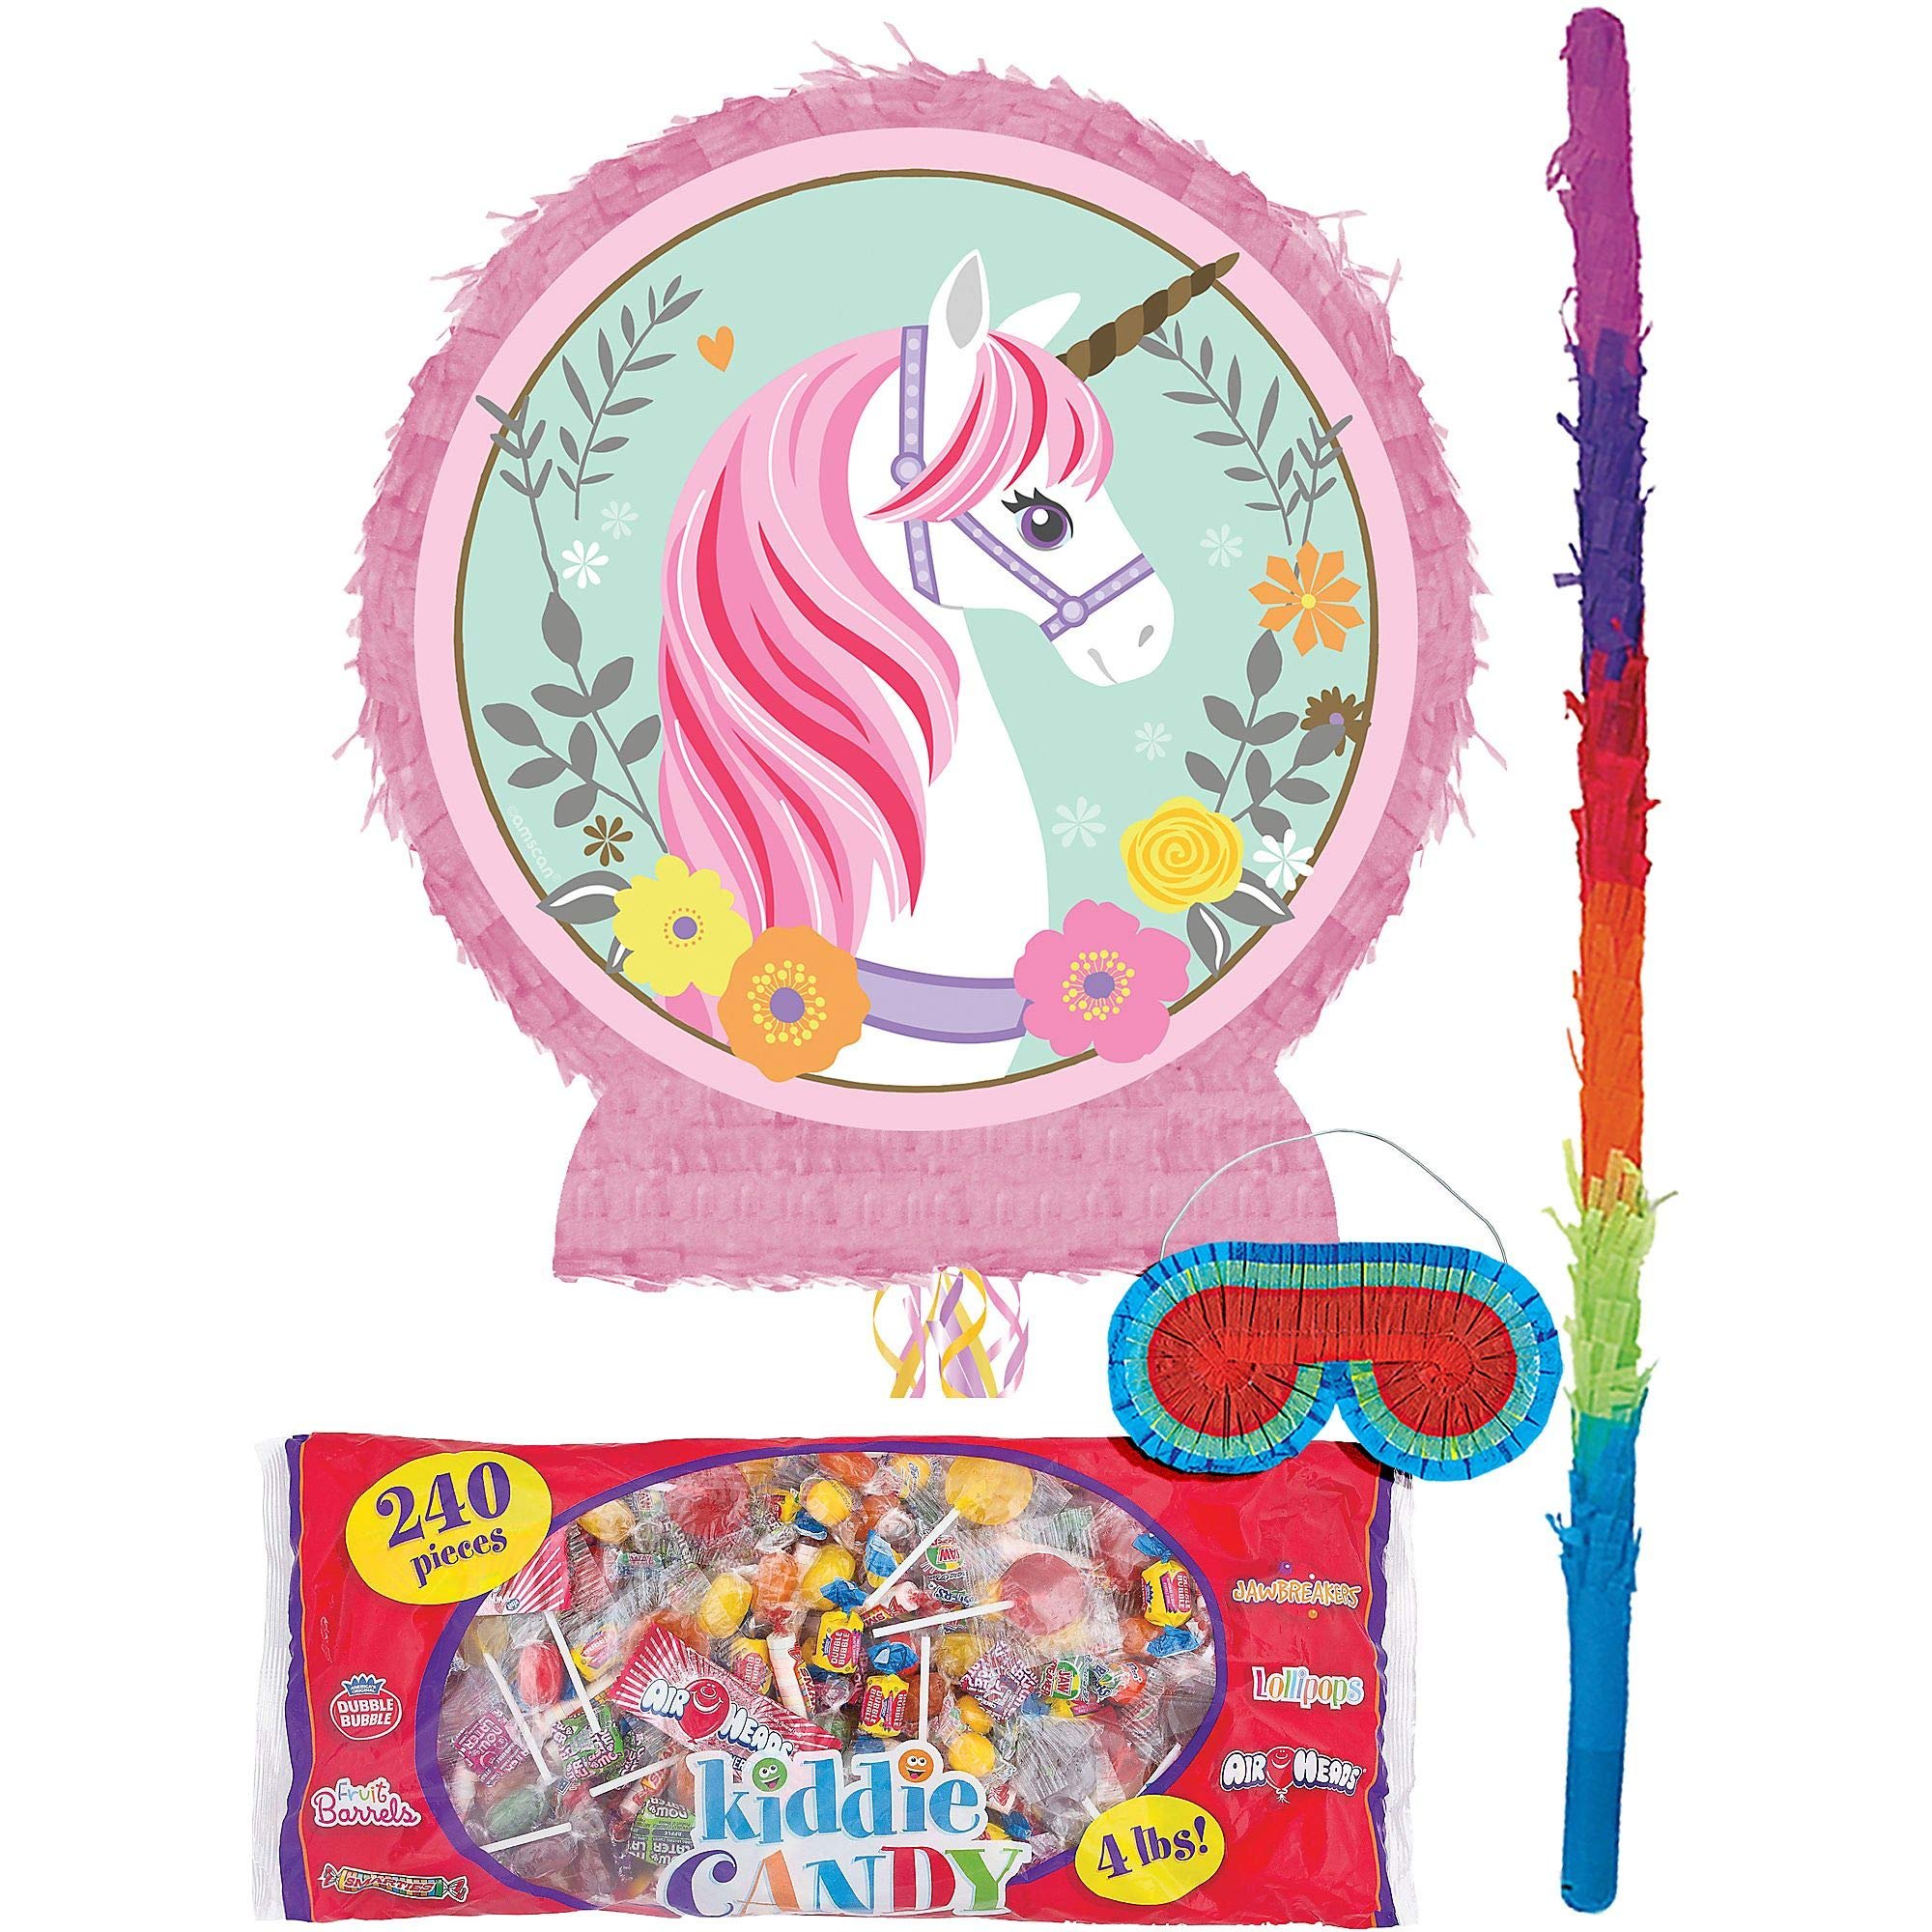 Party City Magical Unicorn Pinata Kit for Birthday Party, Includes Bat, Blindfold and Kiddie Candy Mix (4lb bag)